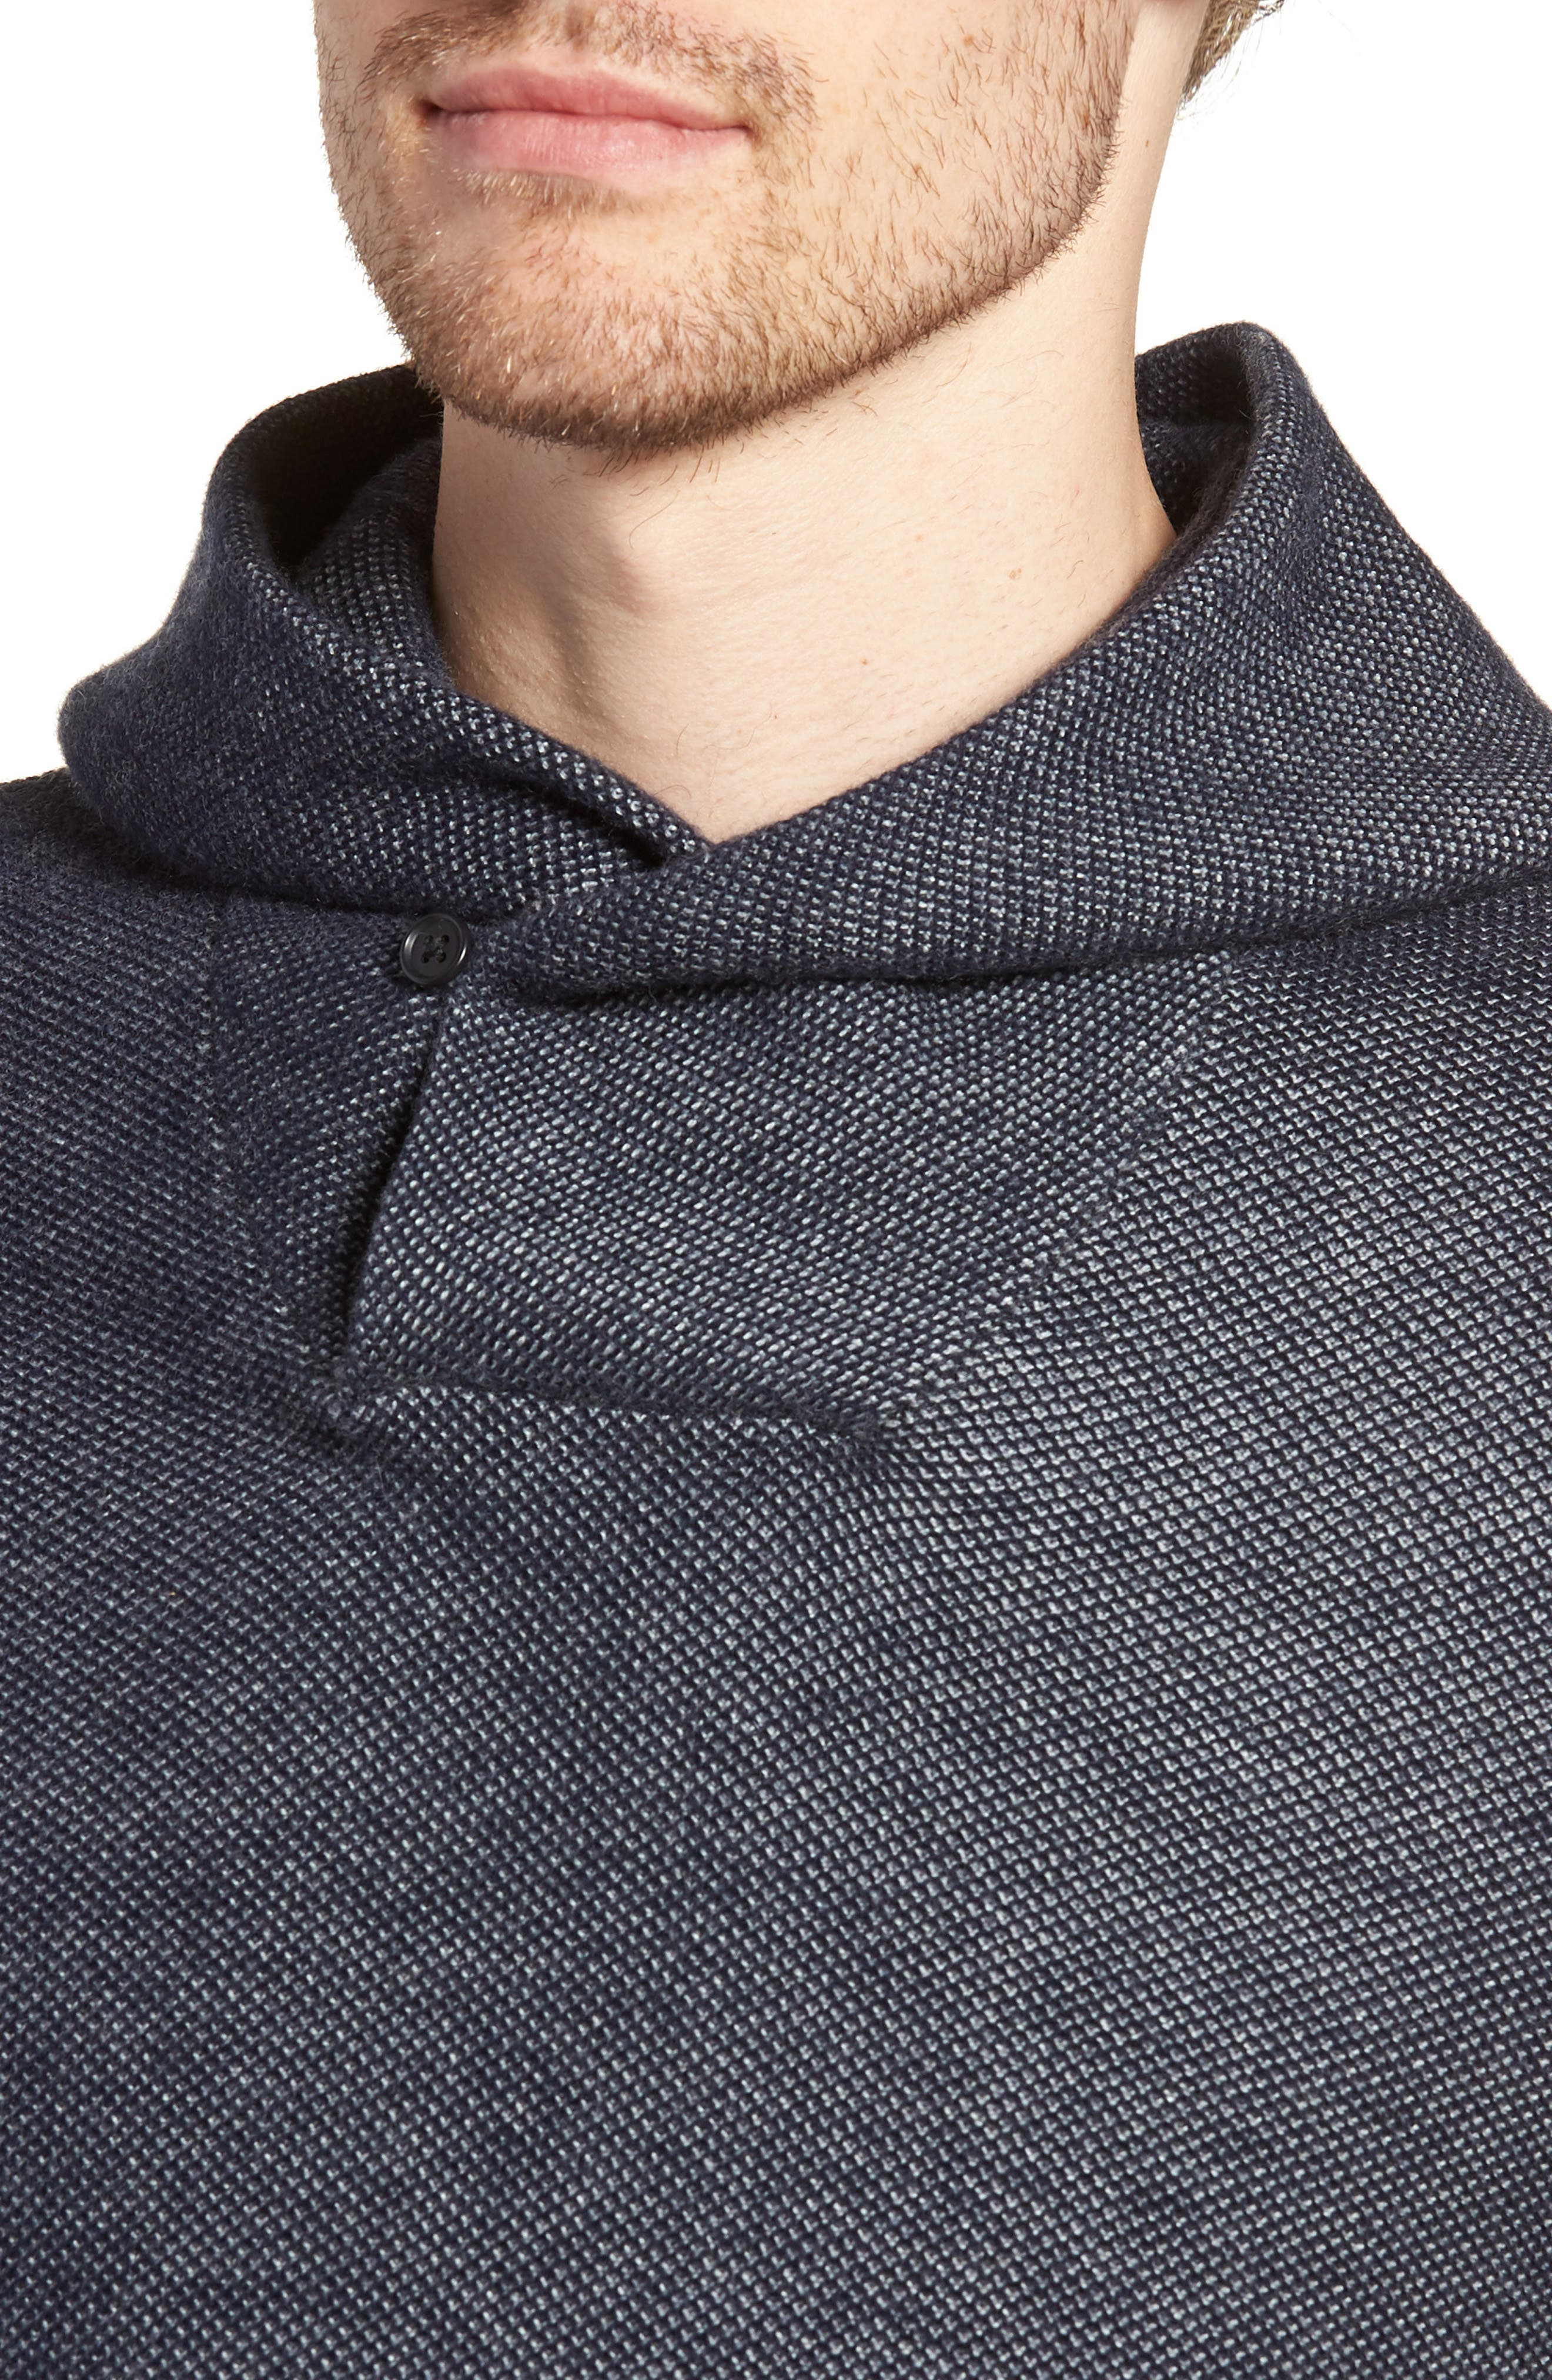 Cotton & Cashmere Hoodie,                             Alternate thumbnail 4, color,                             Midnight Blue/ Heather Silver